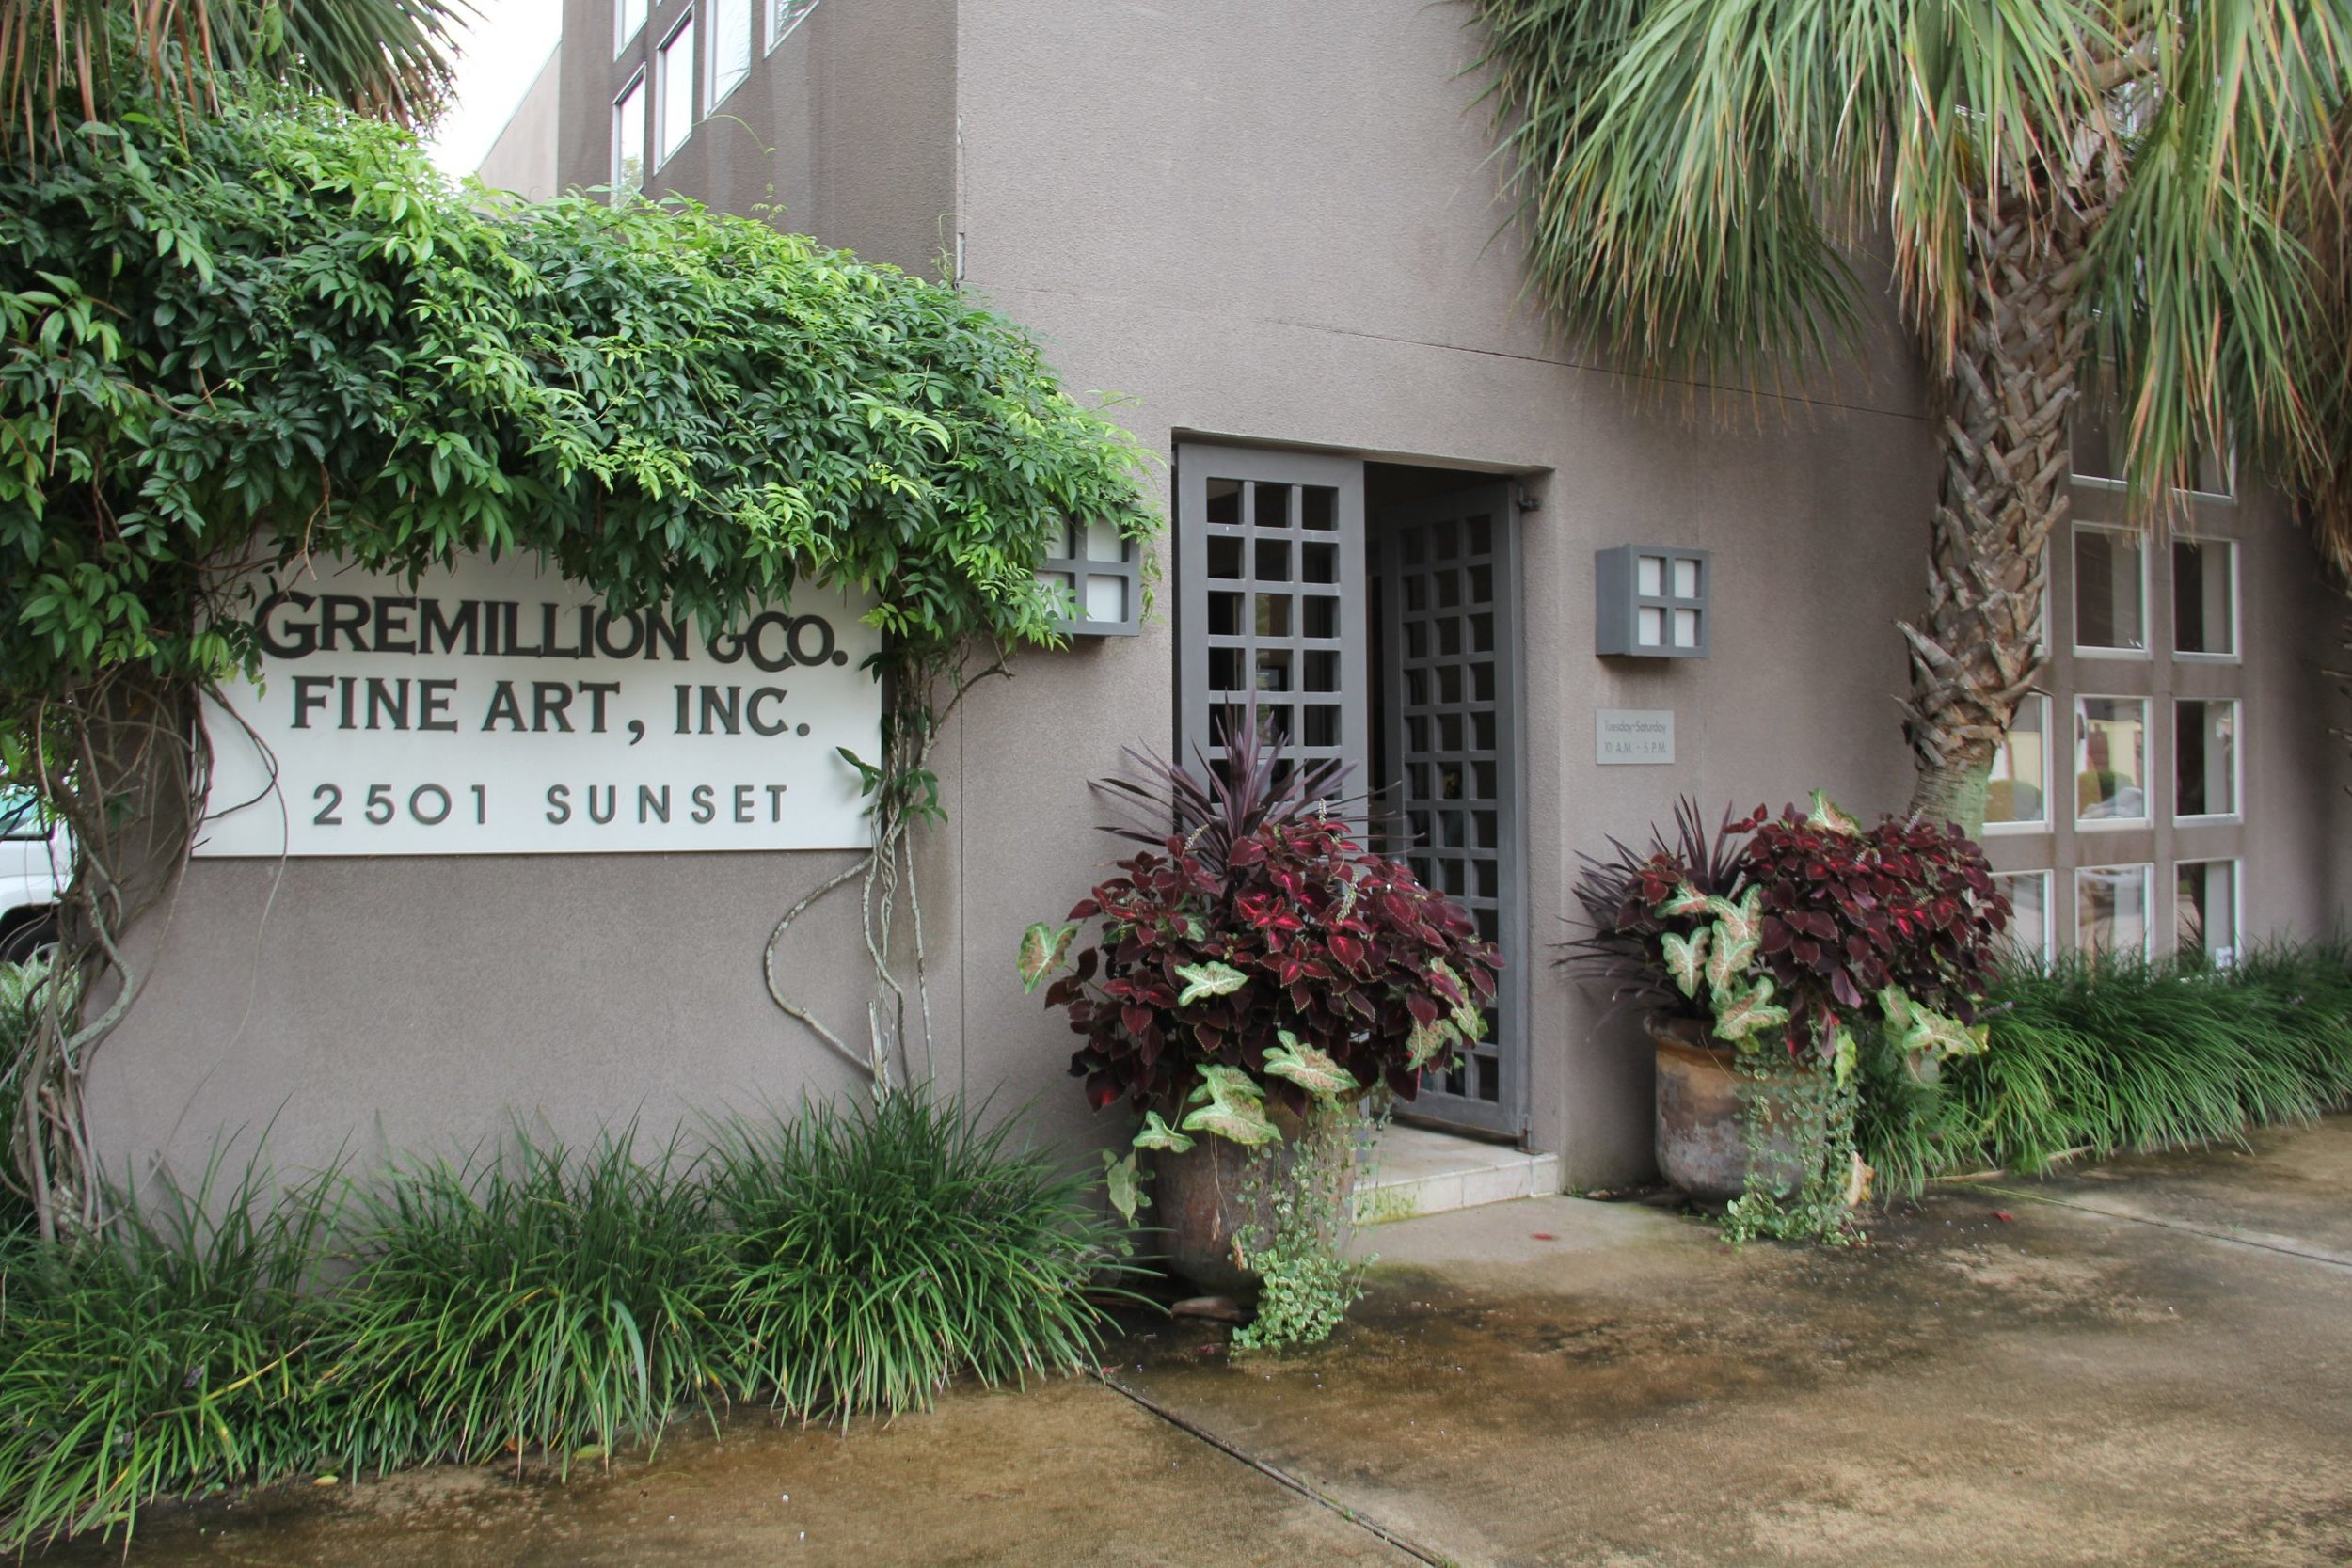 Gremillion & Co. Fine Art, Inc. Main Gallery